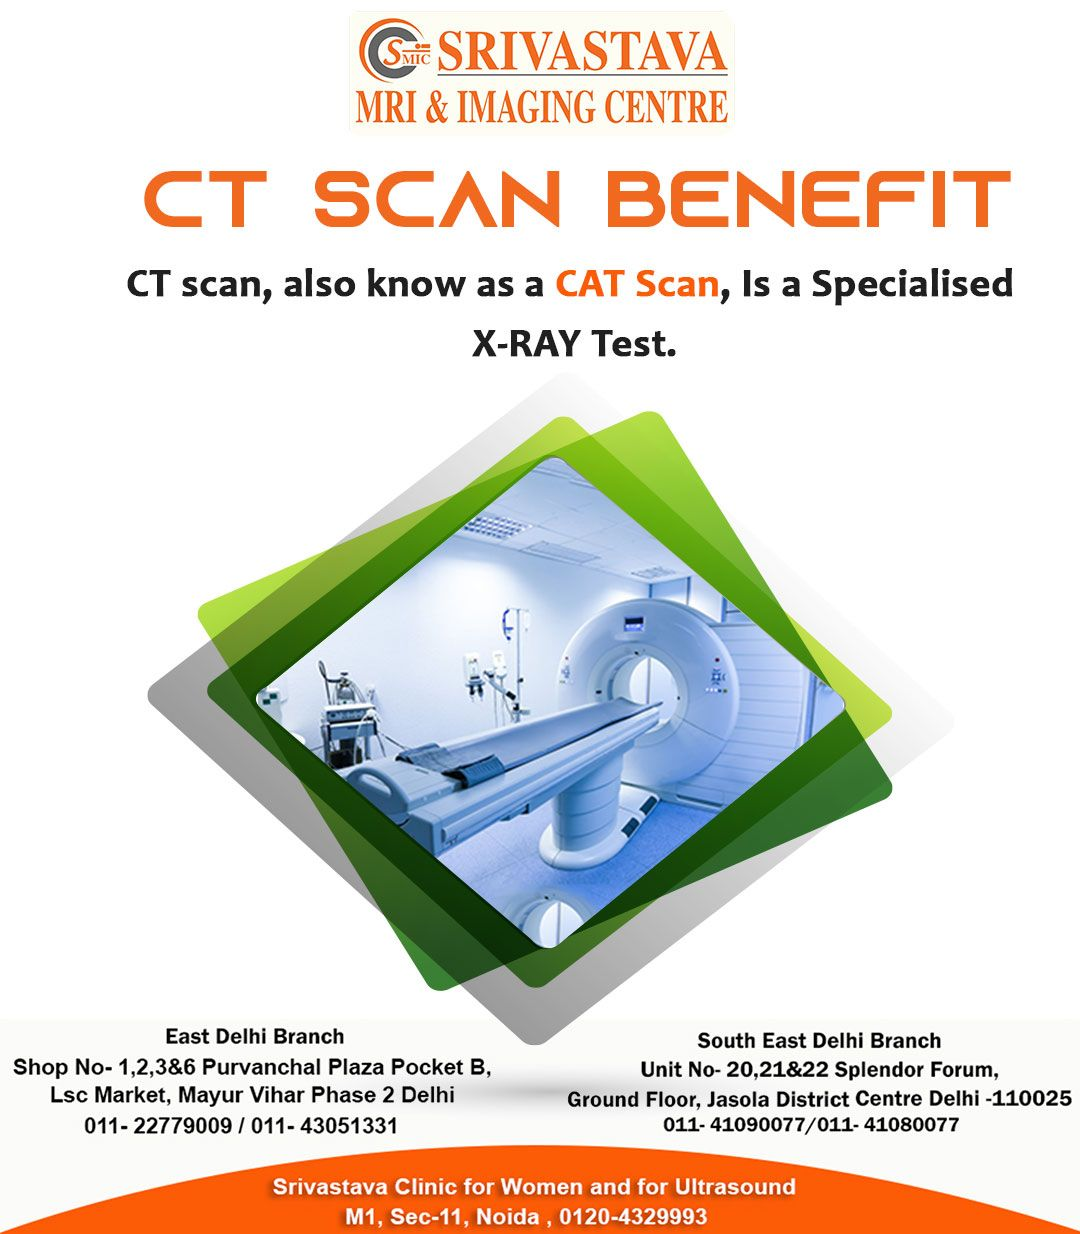 Best CT Scan Center in Delhi Srivastava MRI And Imaging